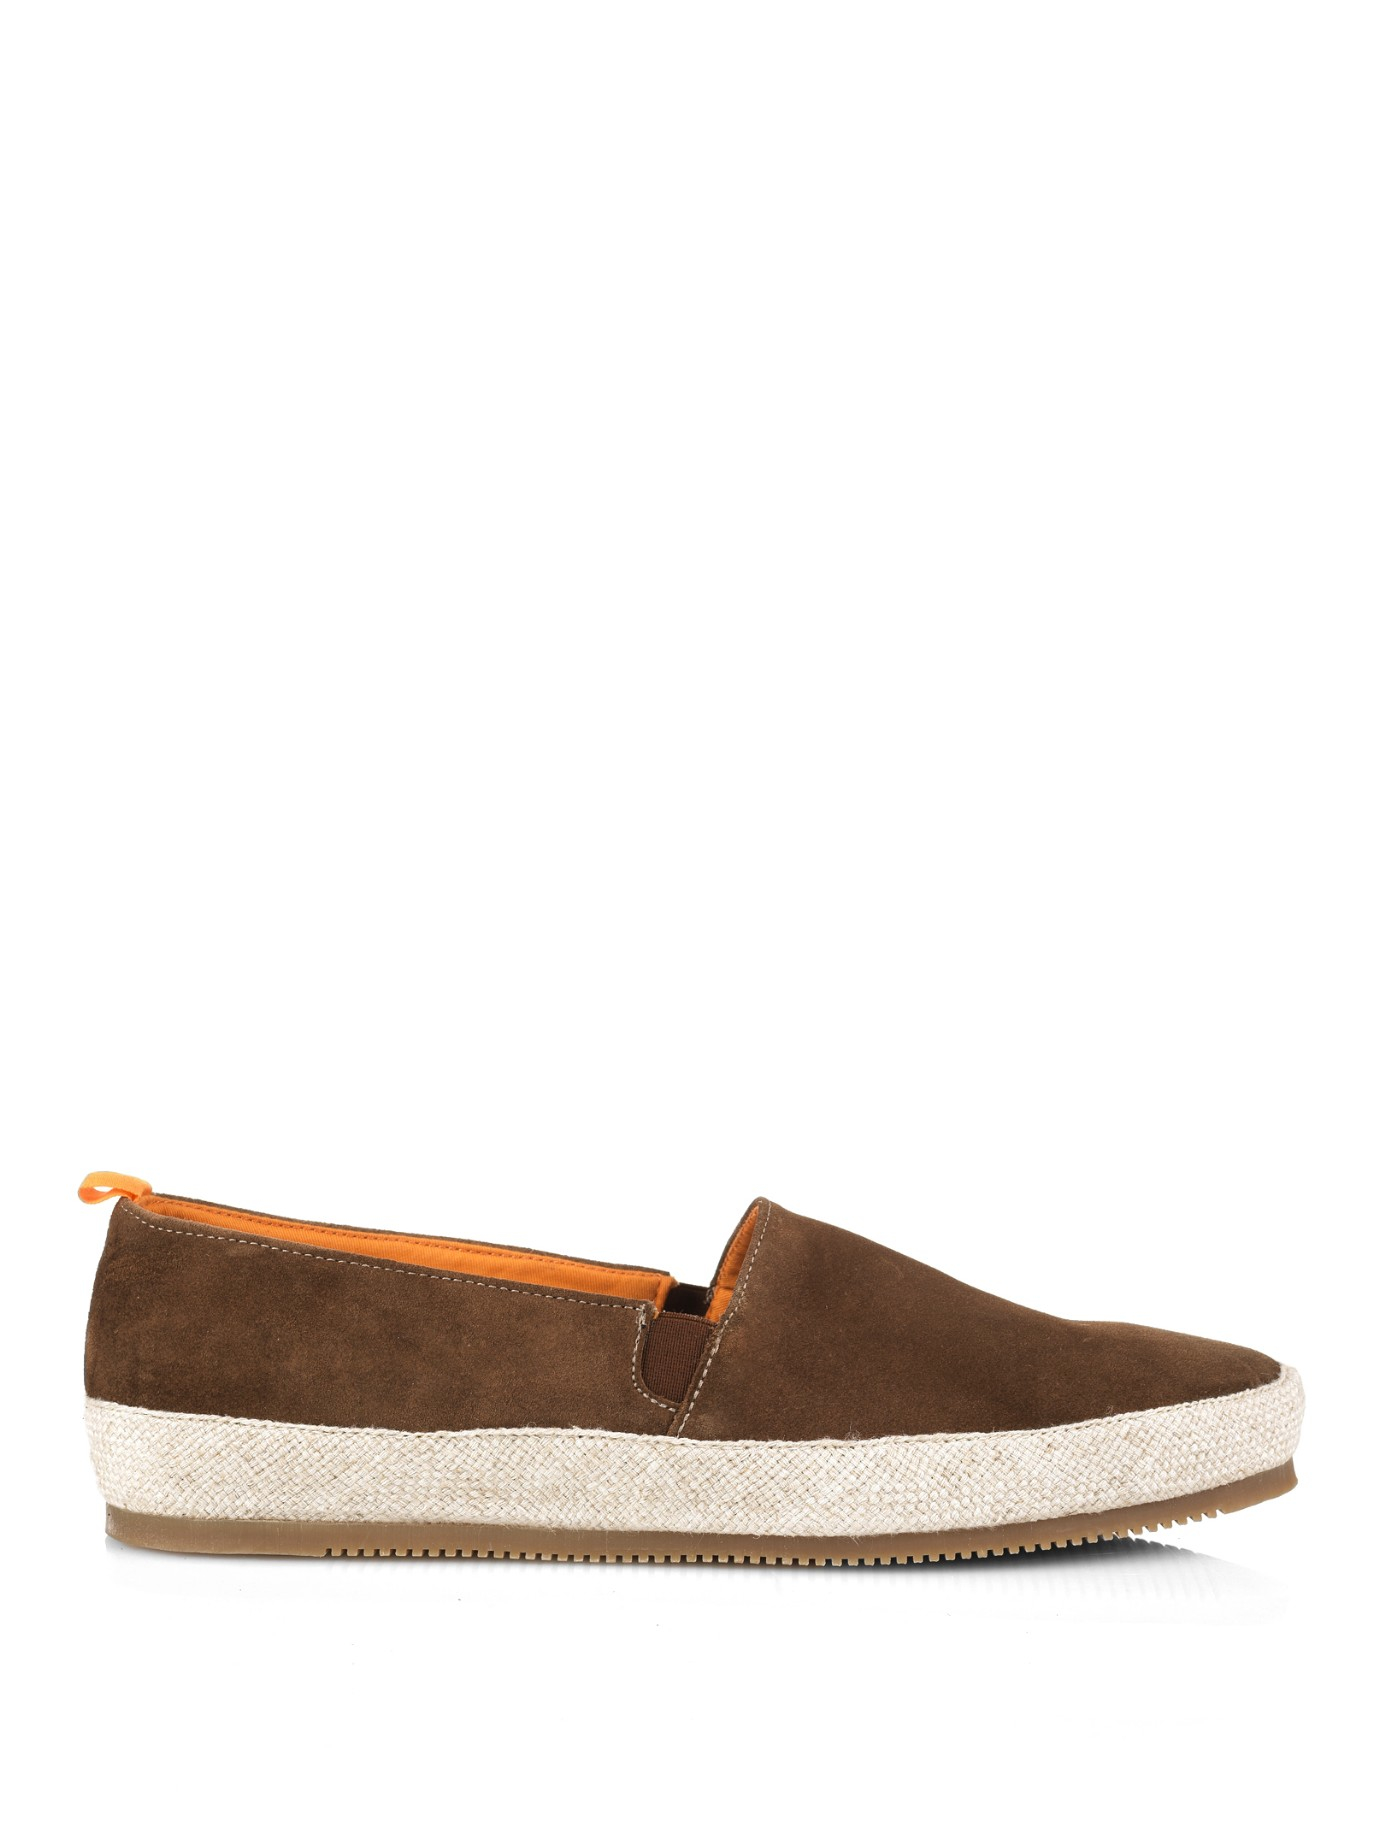 Suede Espadrilles - Light brownMulo